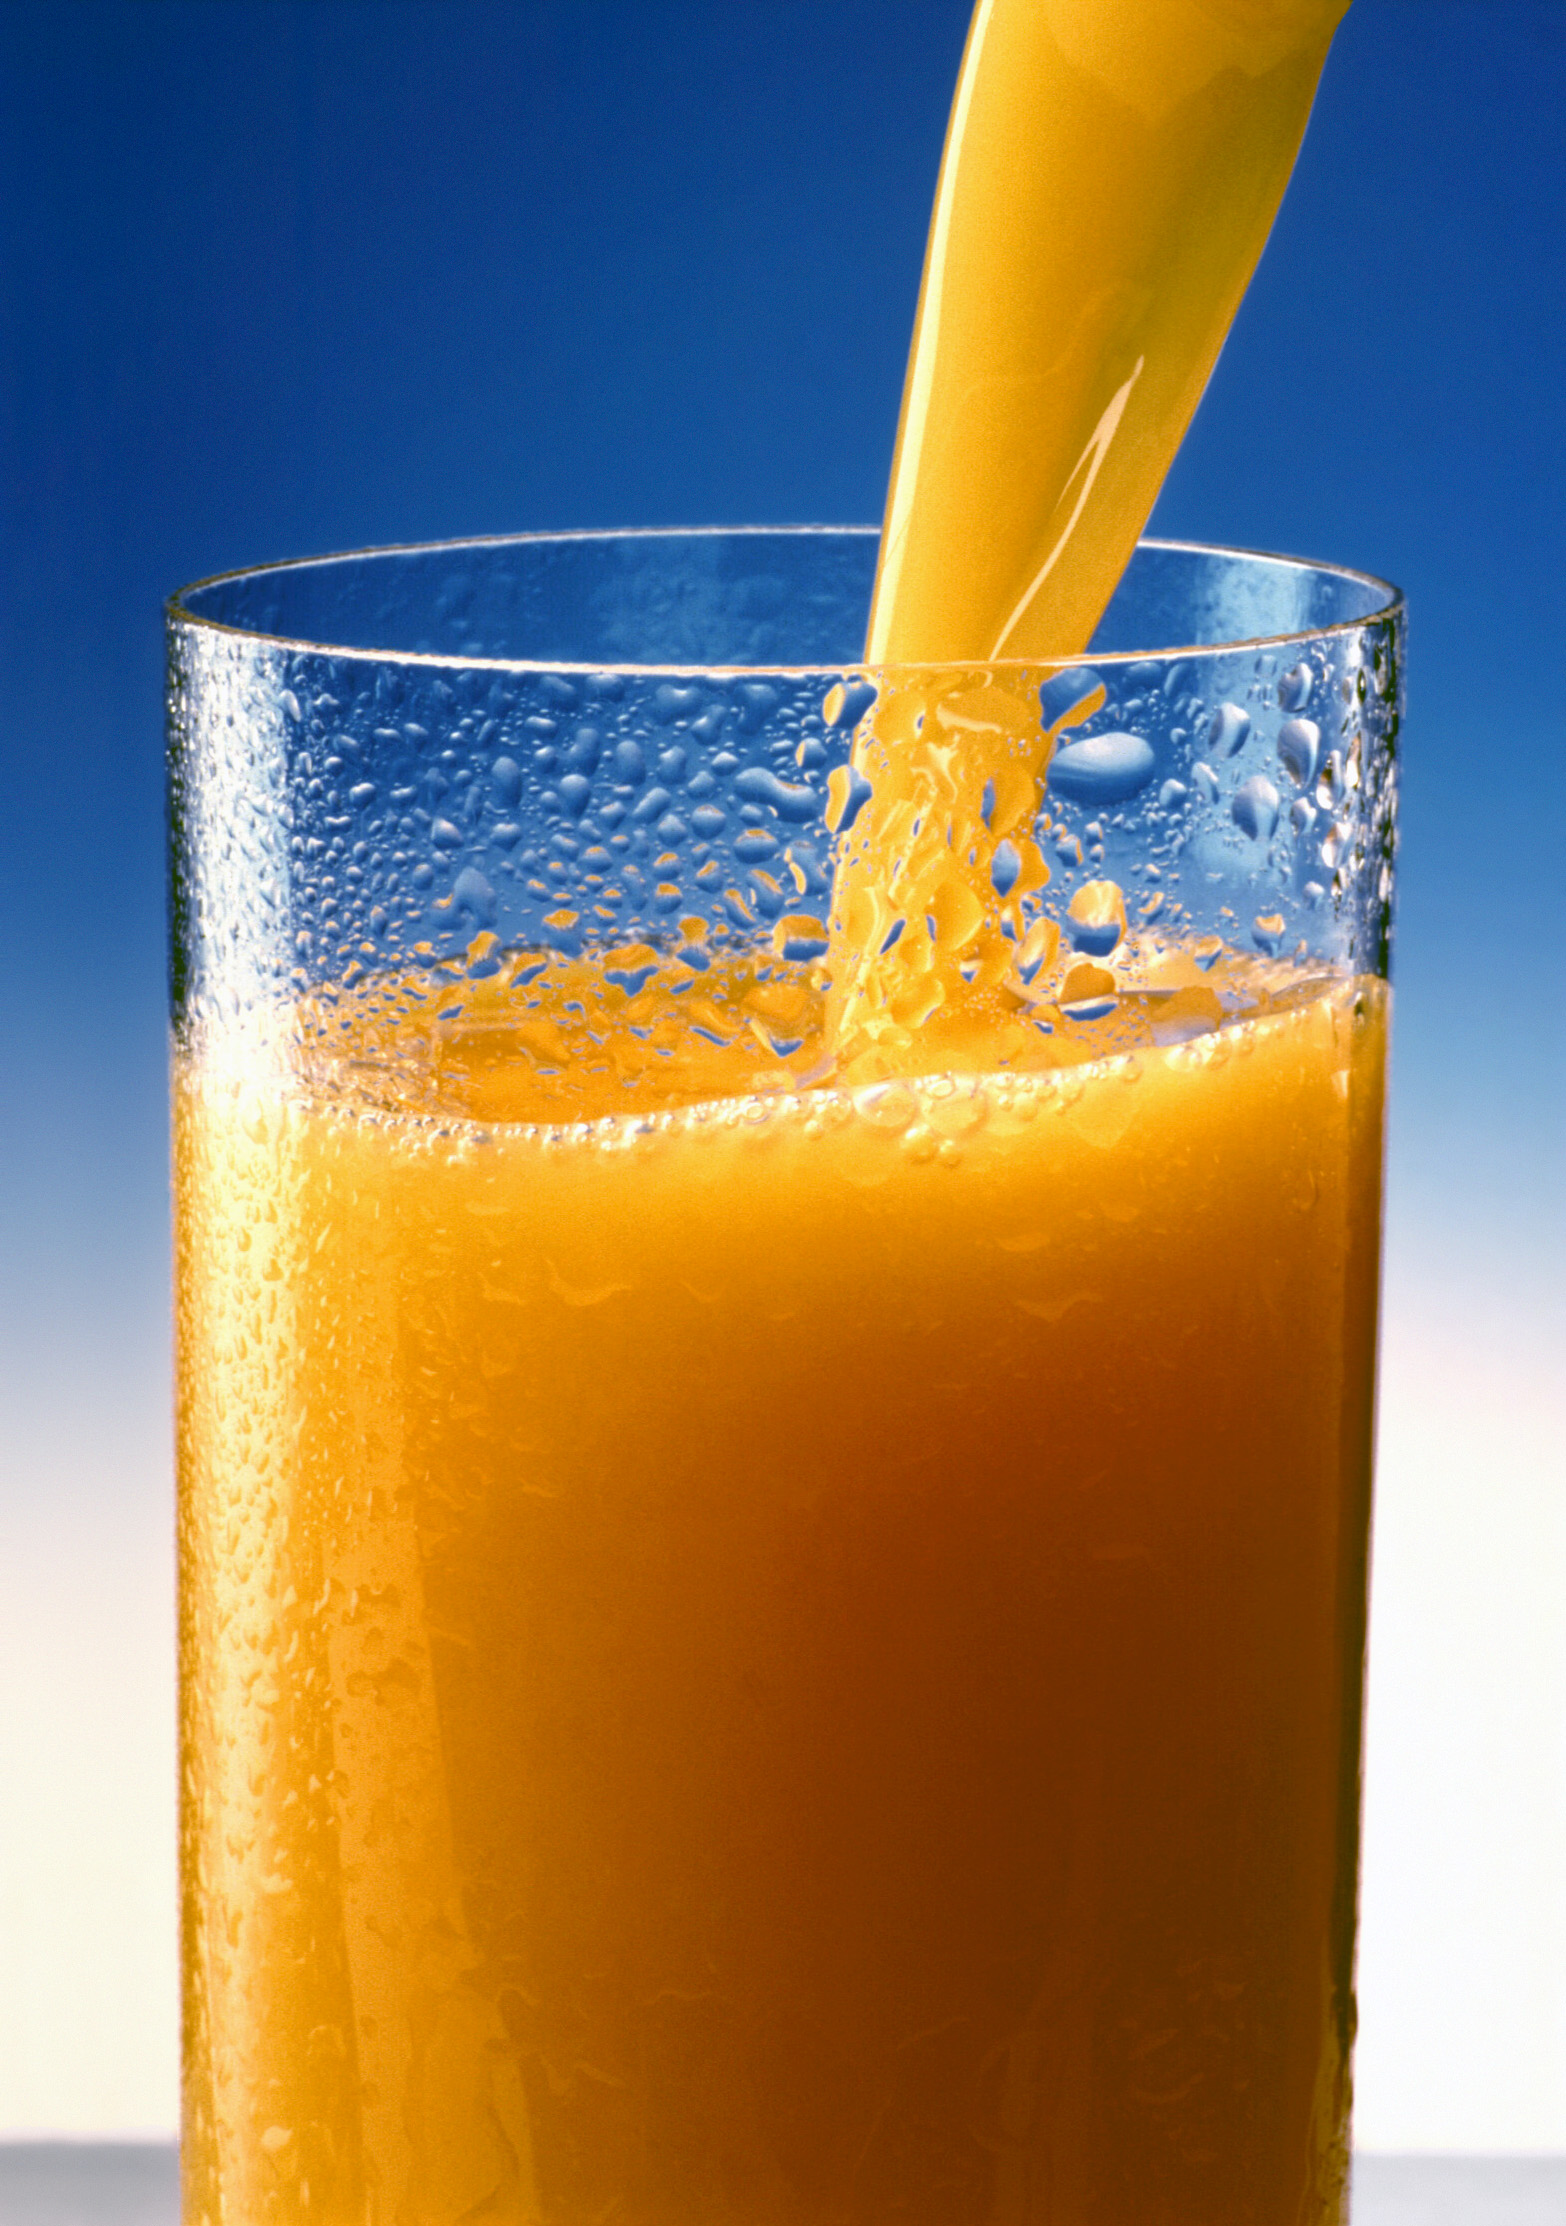 Make Friends With Food: Not a health food: ORANGE JUICE